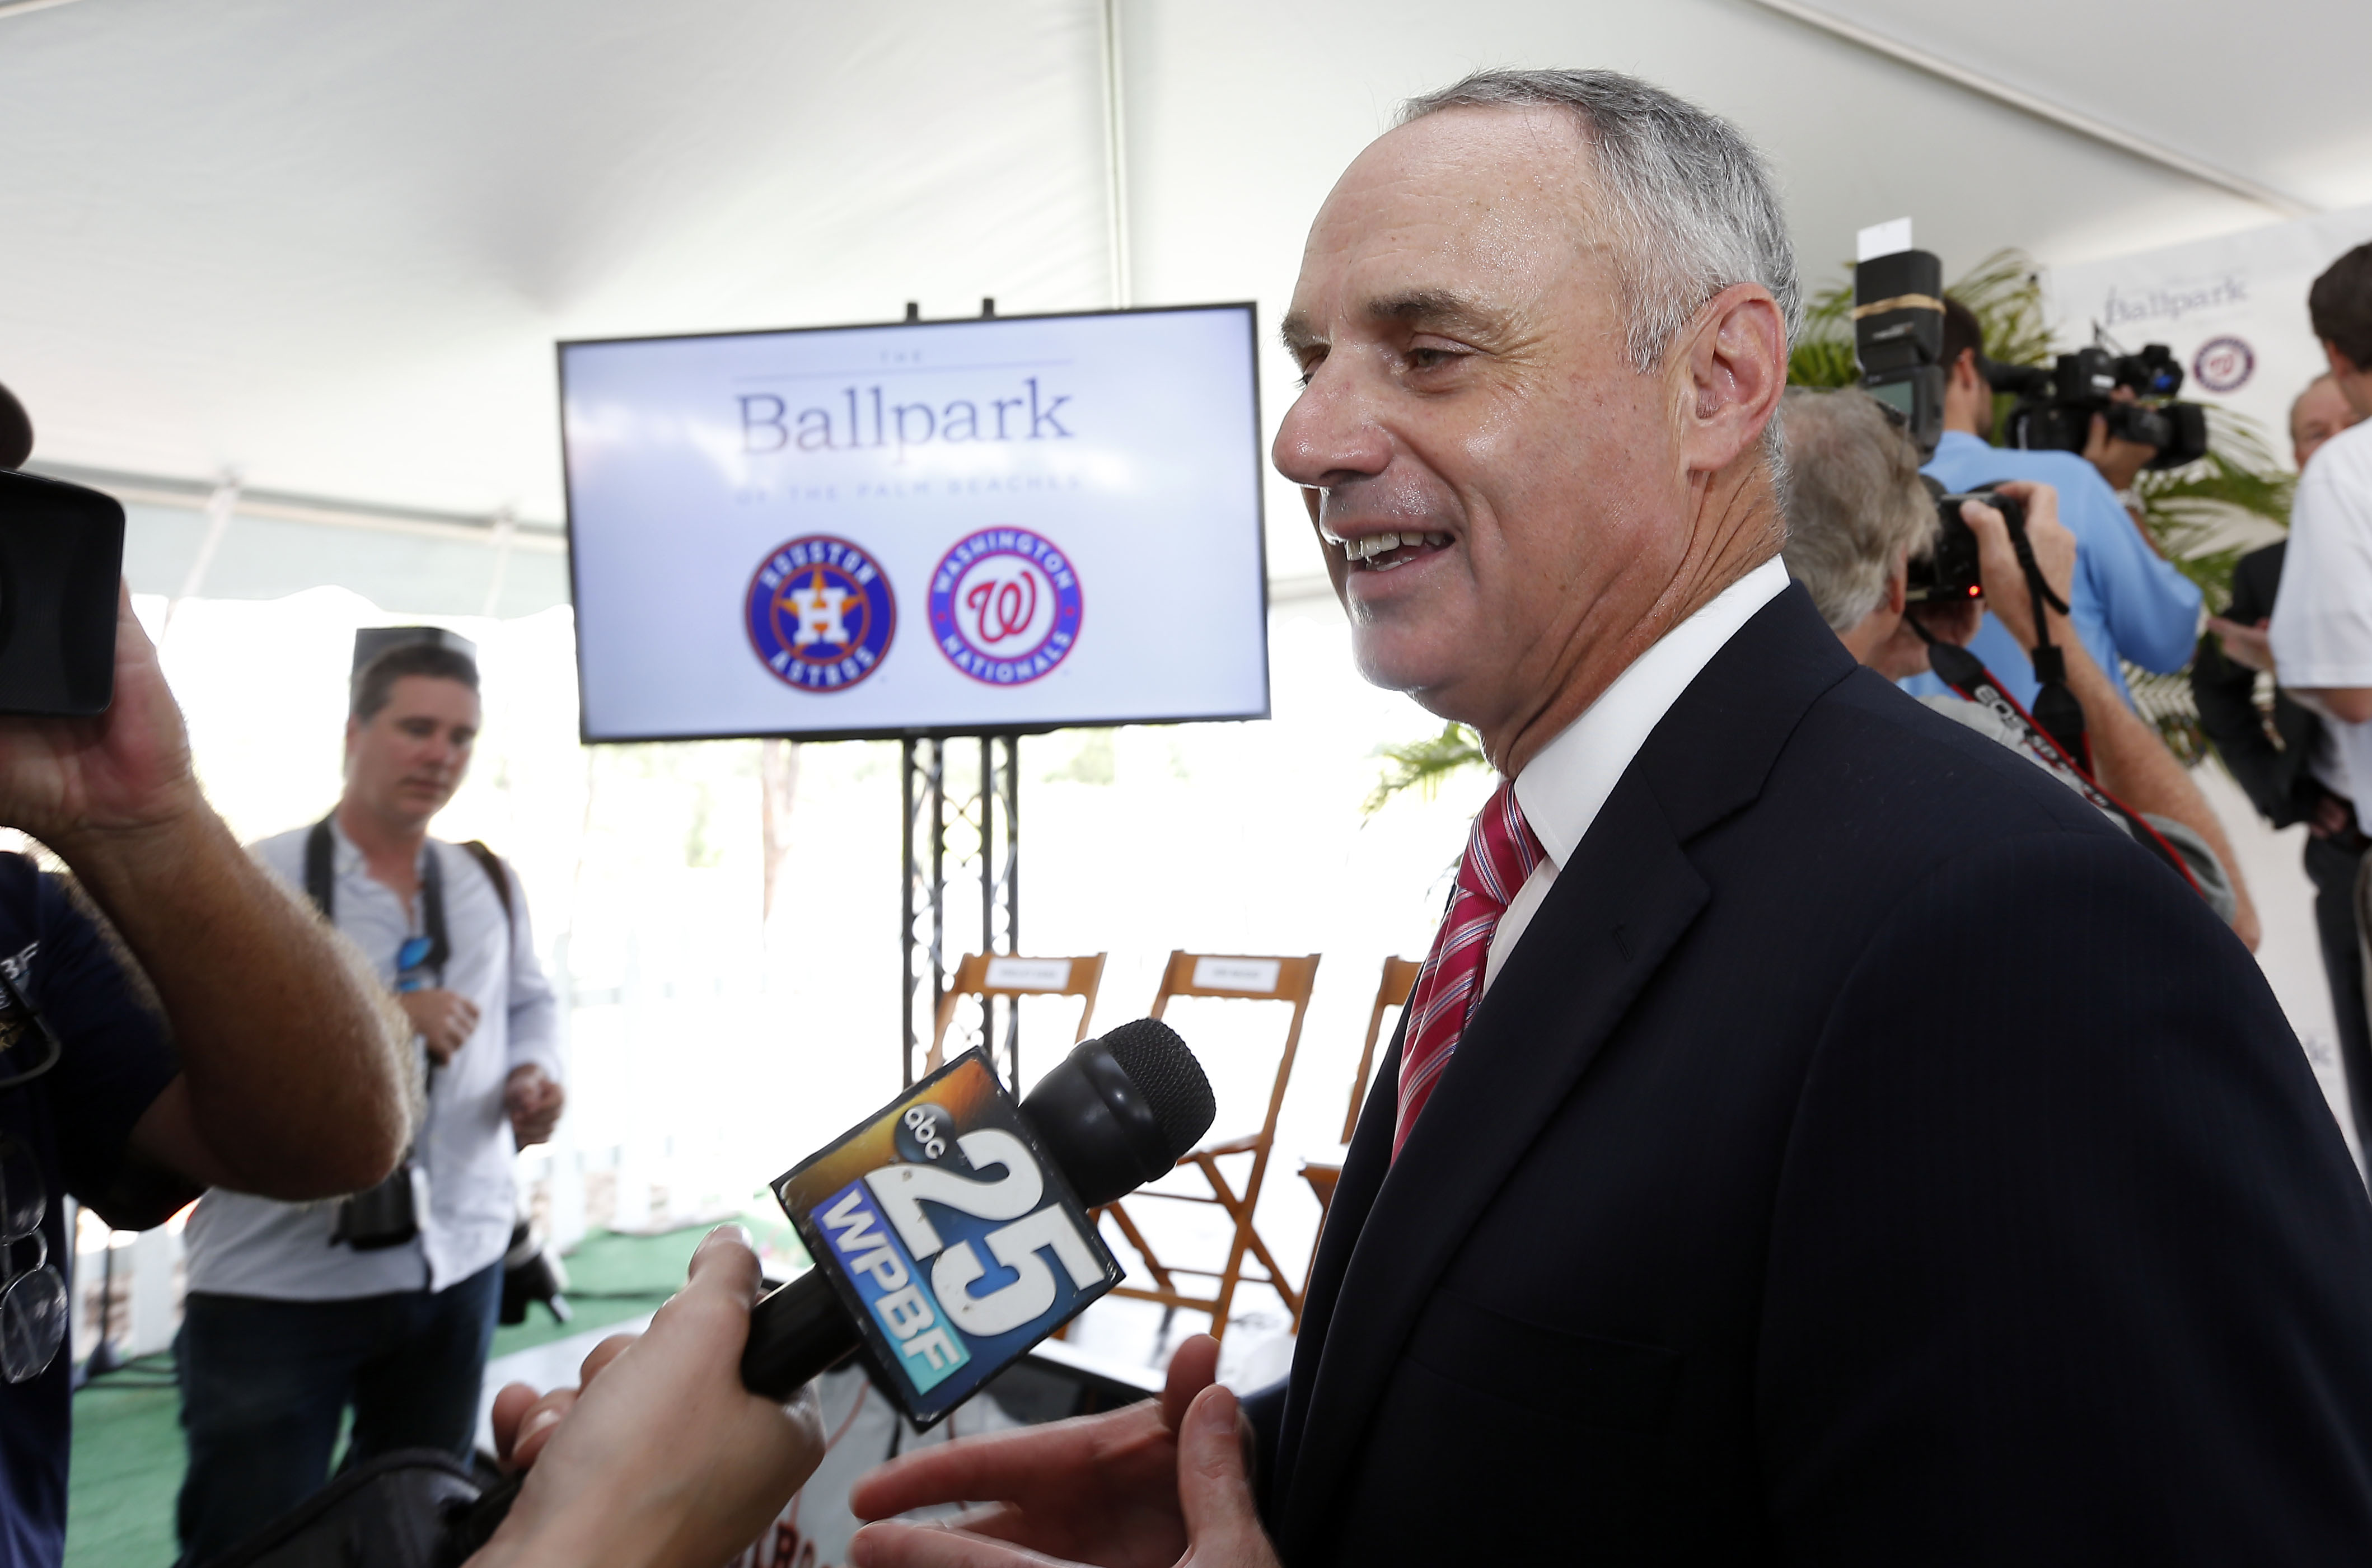 Major League Baseball commissioner Rob Manfred speaks with reporters after the groundbreaking ceremony for the future home of the of Houston Astros and the Washington Nationals spring training facility on Monday, Nov. 9, 2015, in West Palm Beach, Fla. (AP